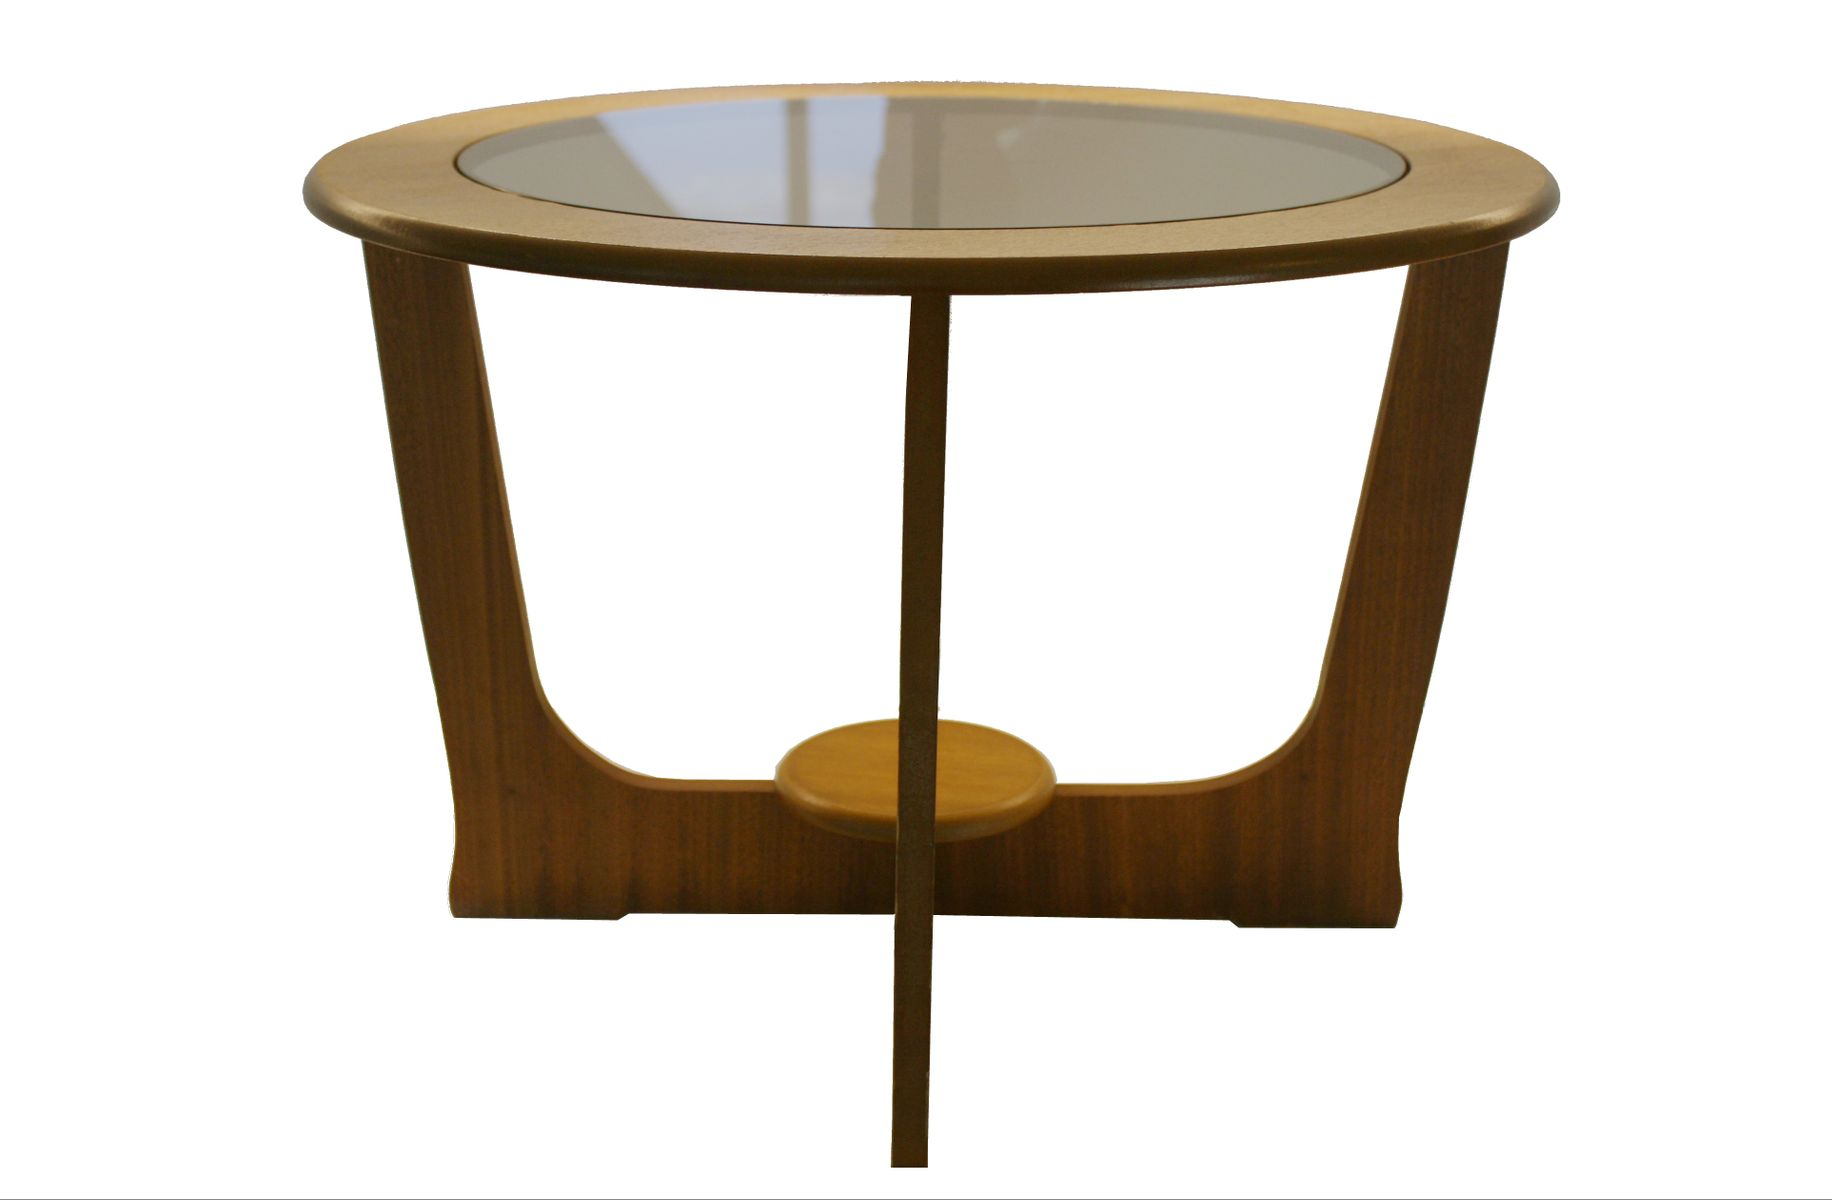 table basse ronde vintage en teck royaume uni 1960s en vente sur pamono. Black Bedroom Furniture Sets. Home Design Ideas